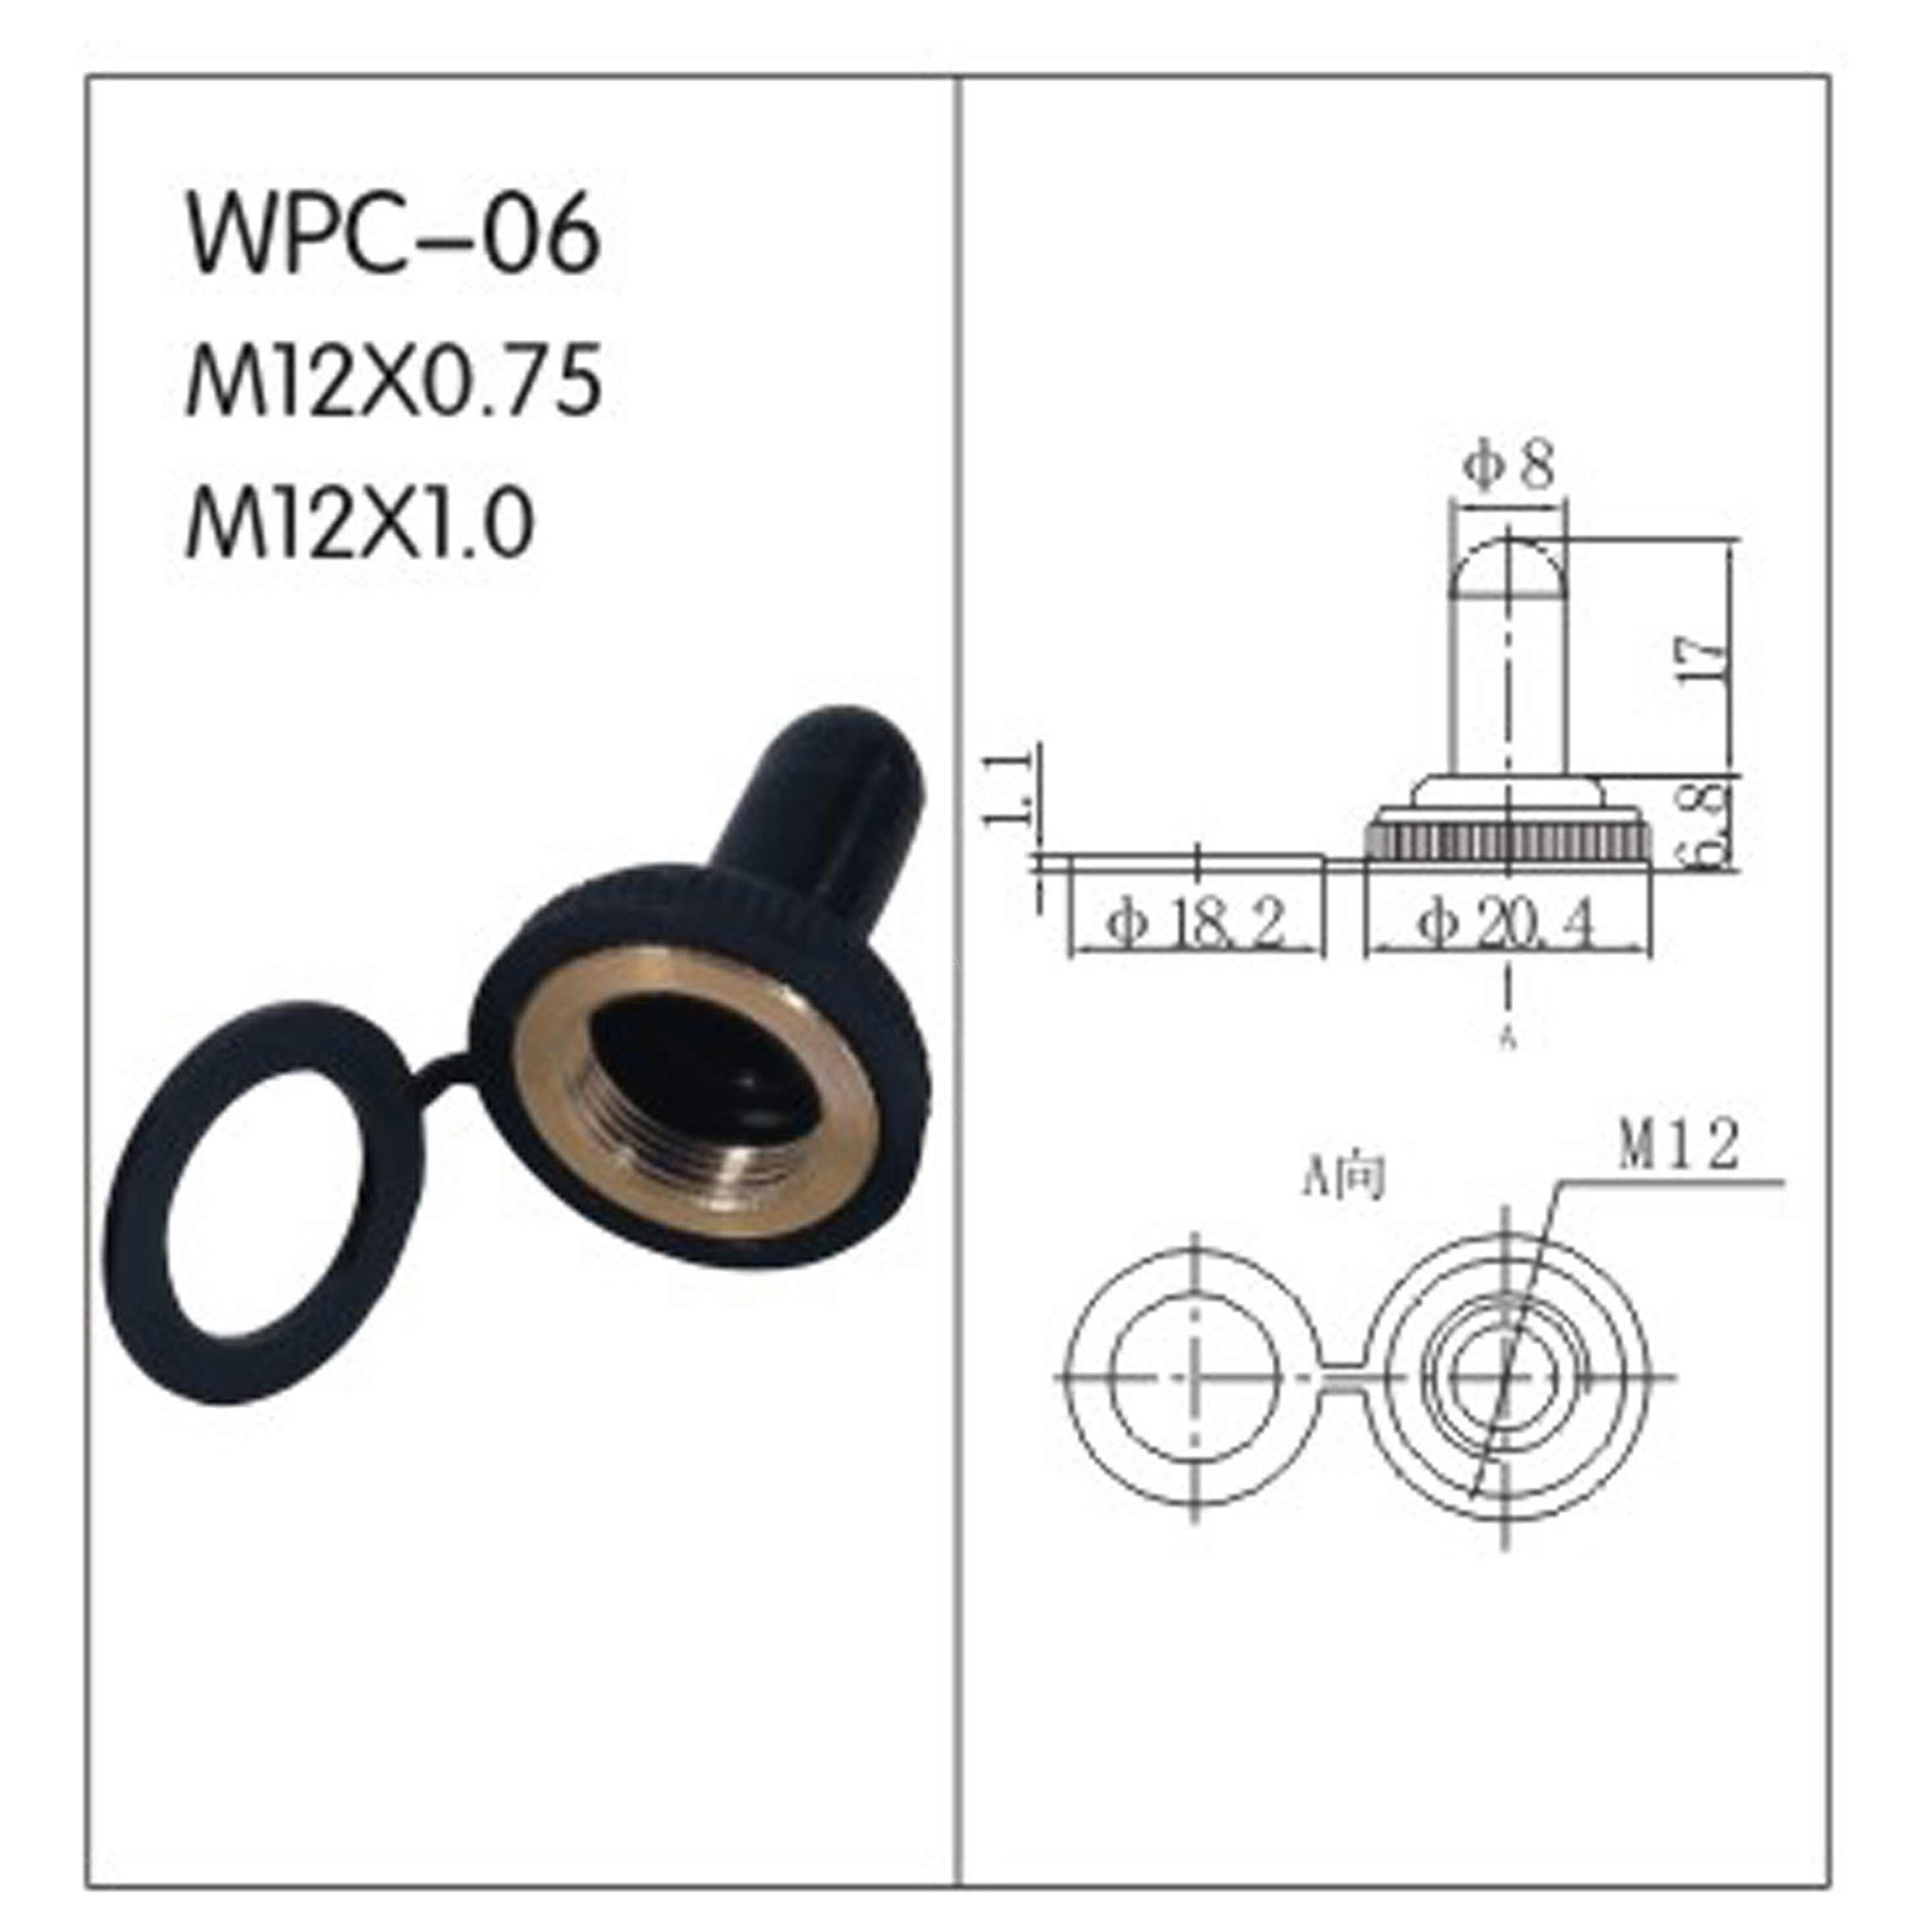 WPC-06